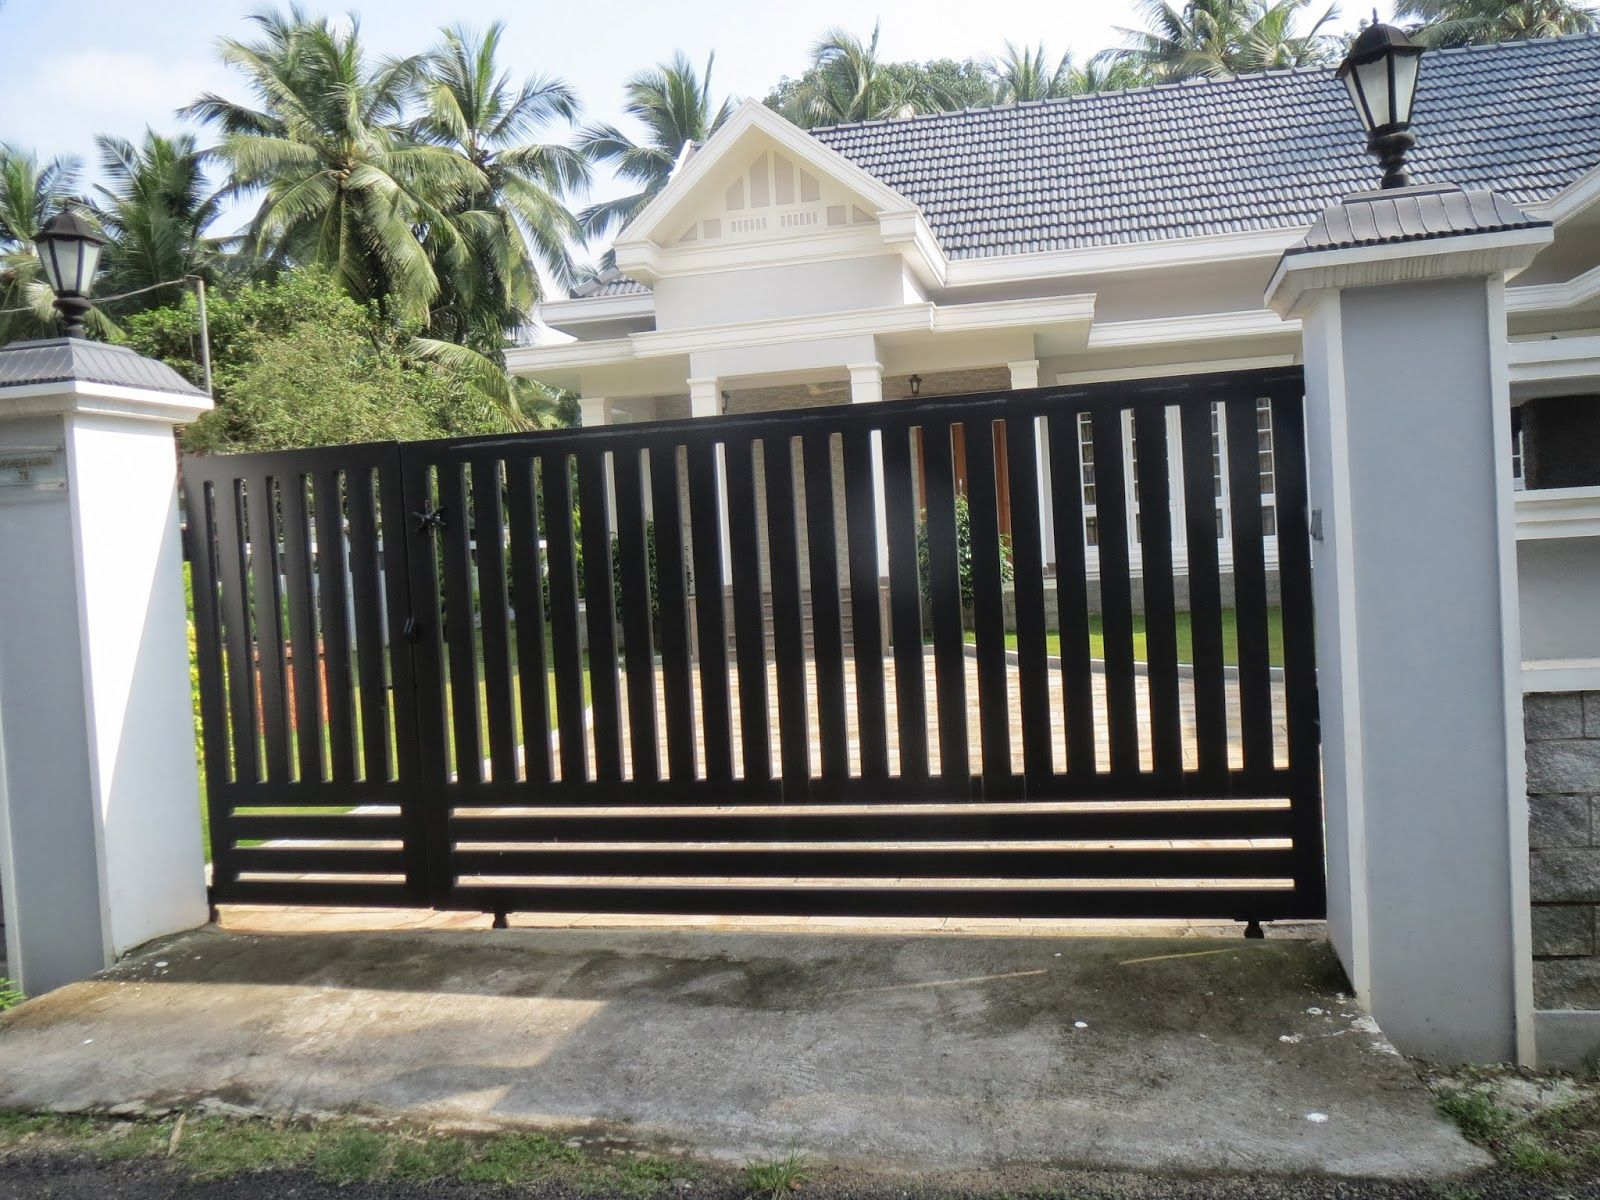 e9d0dee06ea57581088dda989a4fbafc - 44+ Minimalist Simple Gate Design For Small House Background